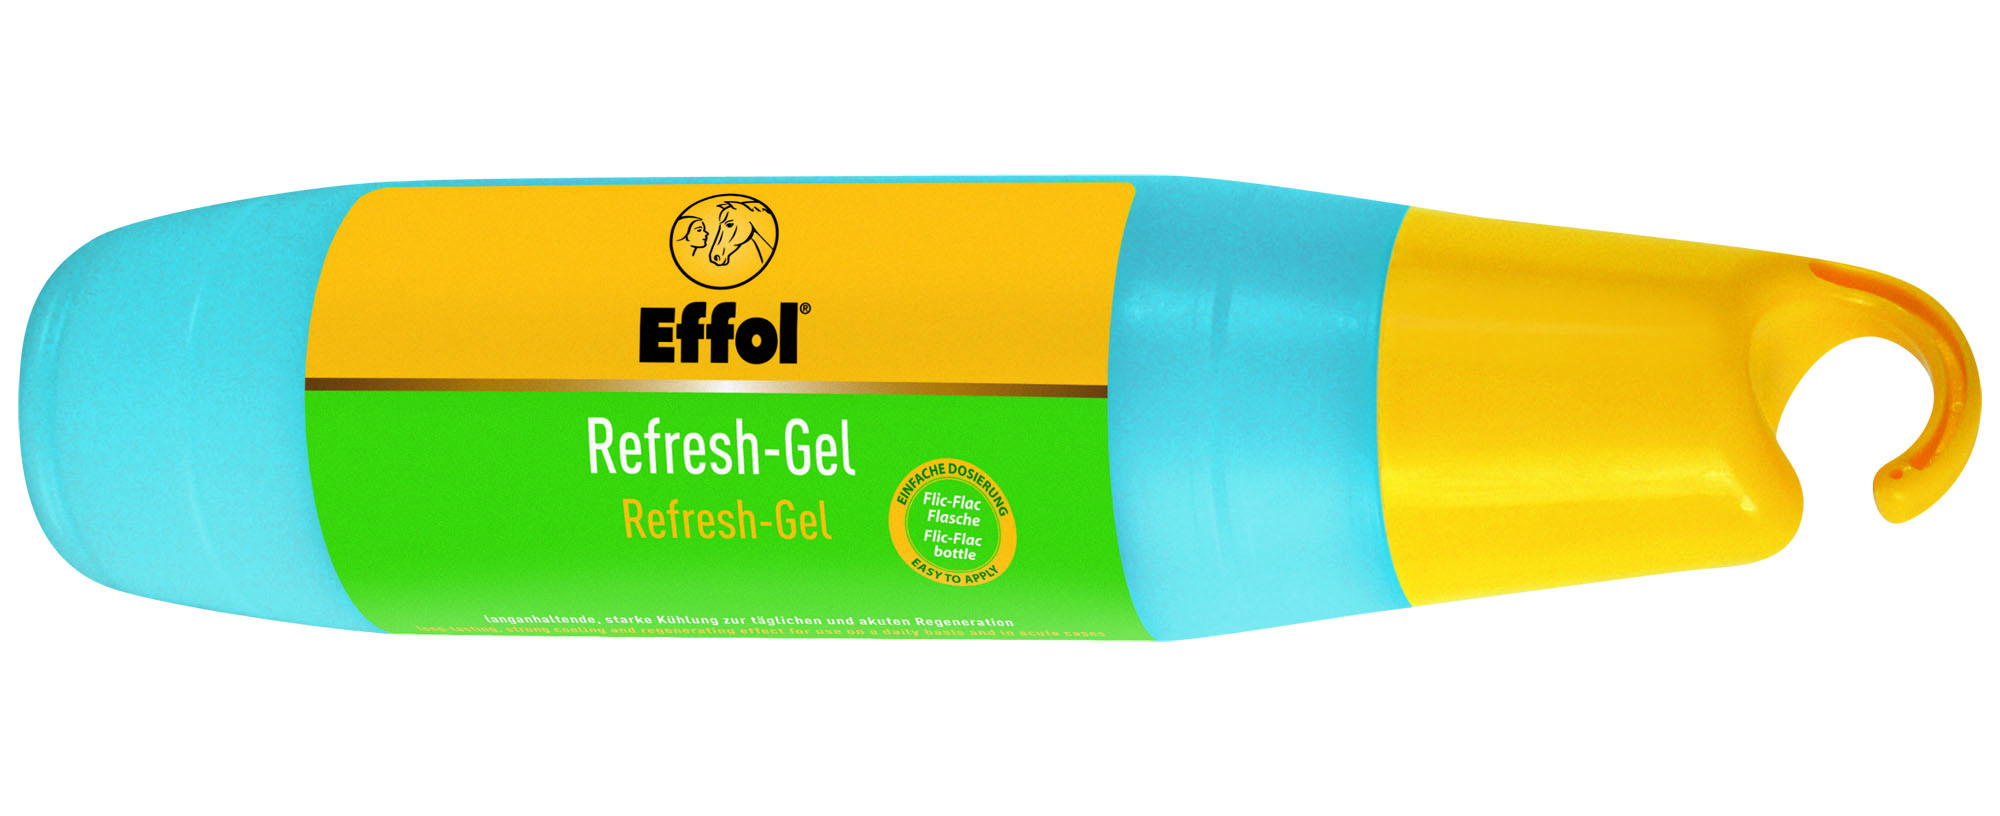 Effol Refresh-Gel 500ml